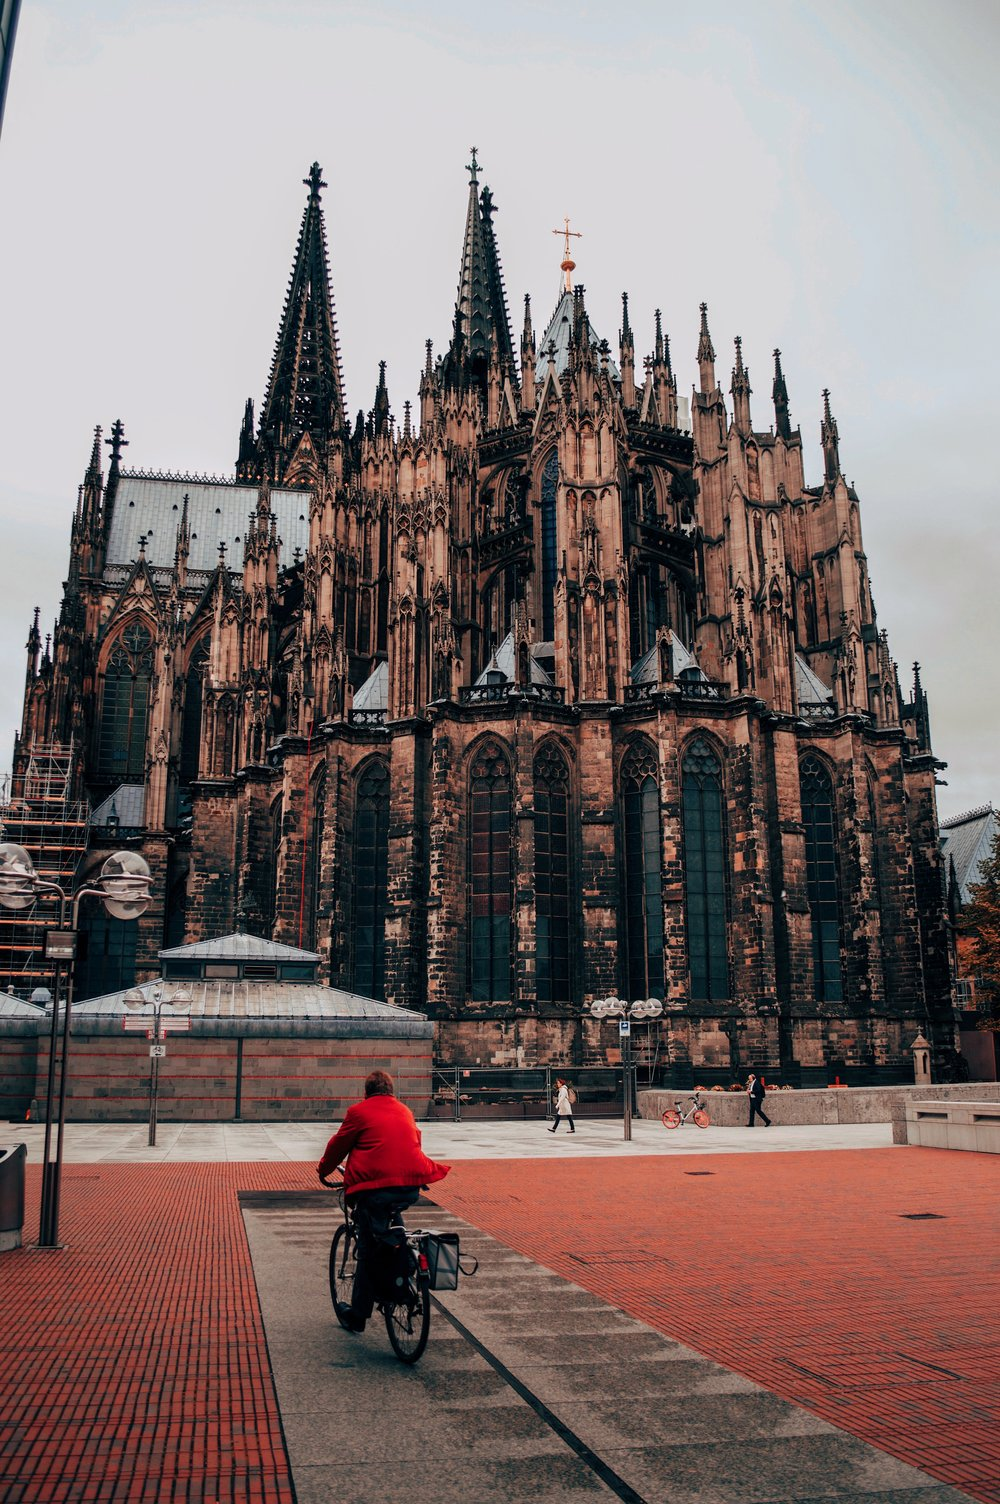 @jjgarcia_10 - Cologne Germany